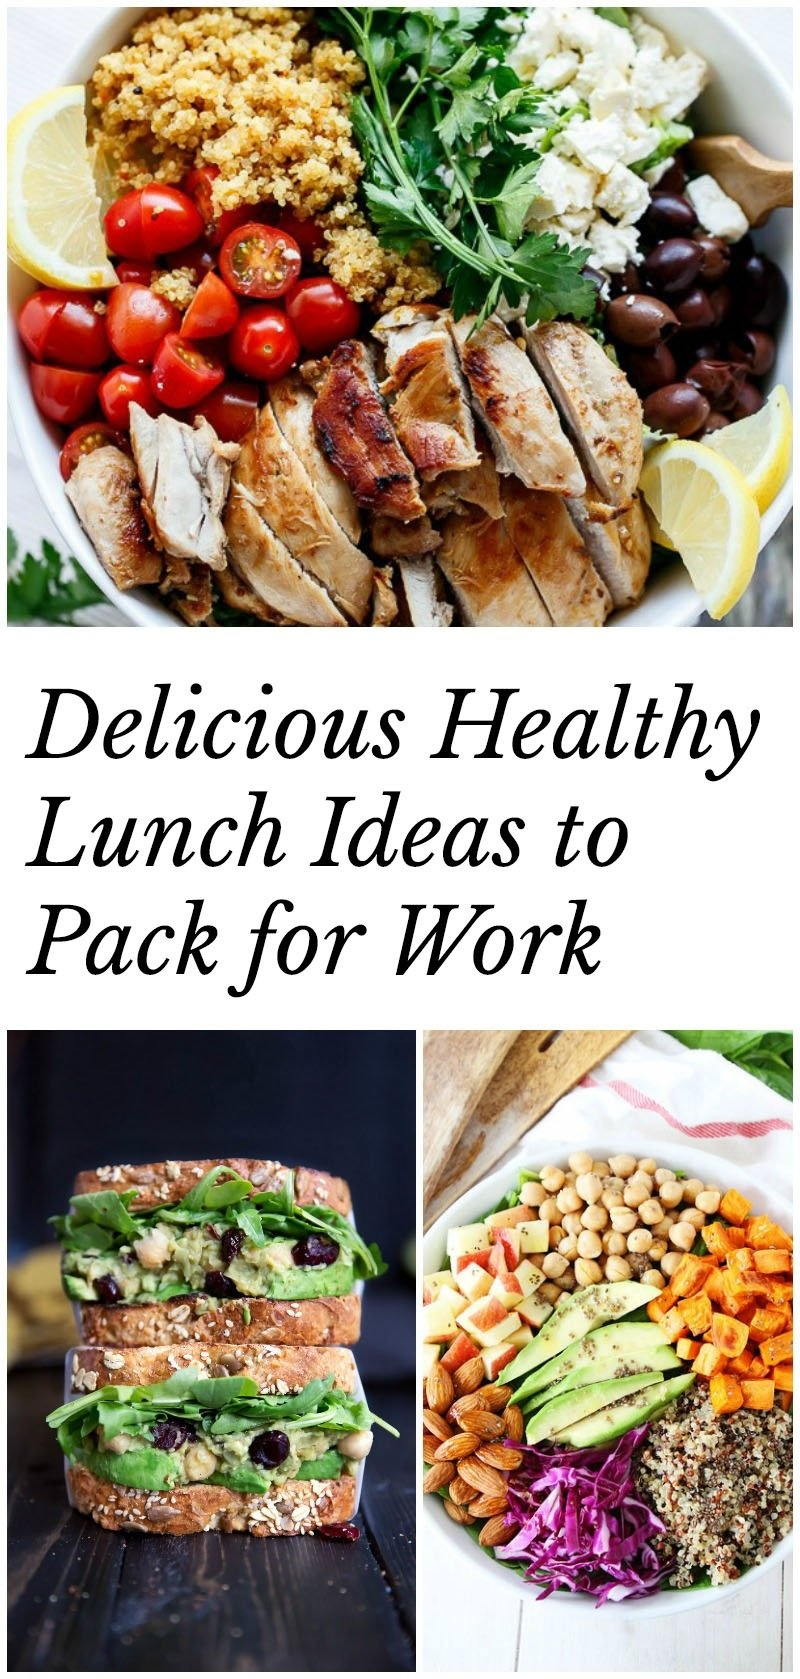 10 Fashionable Healthy And Easy Lunch Ideas healthy lunch ideas to pack for work 40 recipes 27 2020